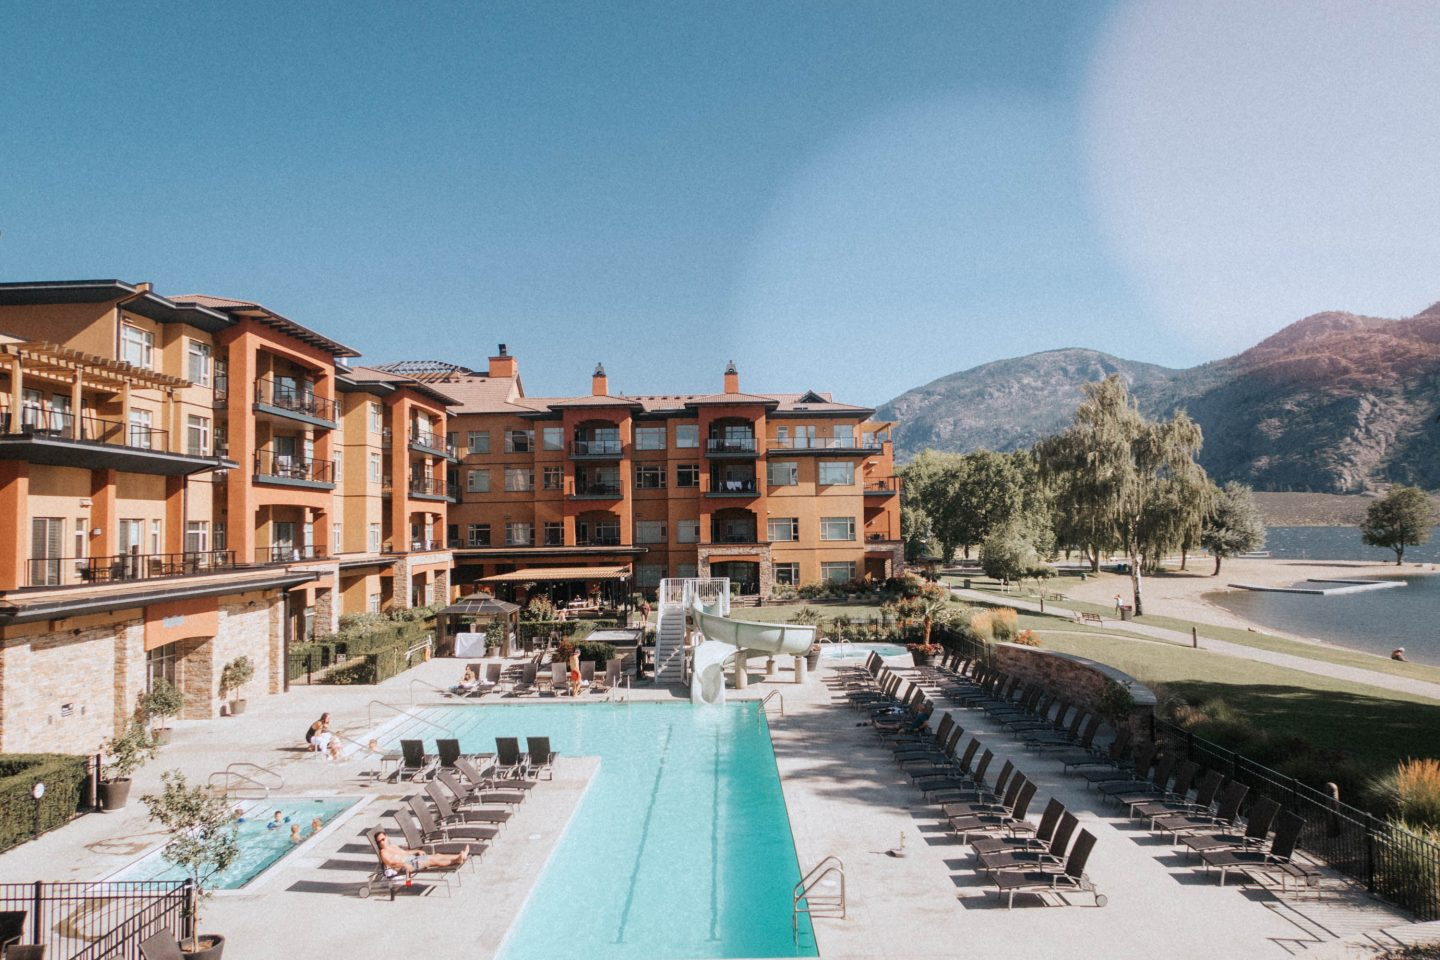 View of the pool and courtyard of The Watermark Resort in Osoyoos BC in the Okanagan